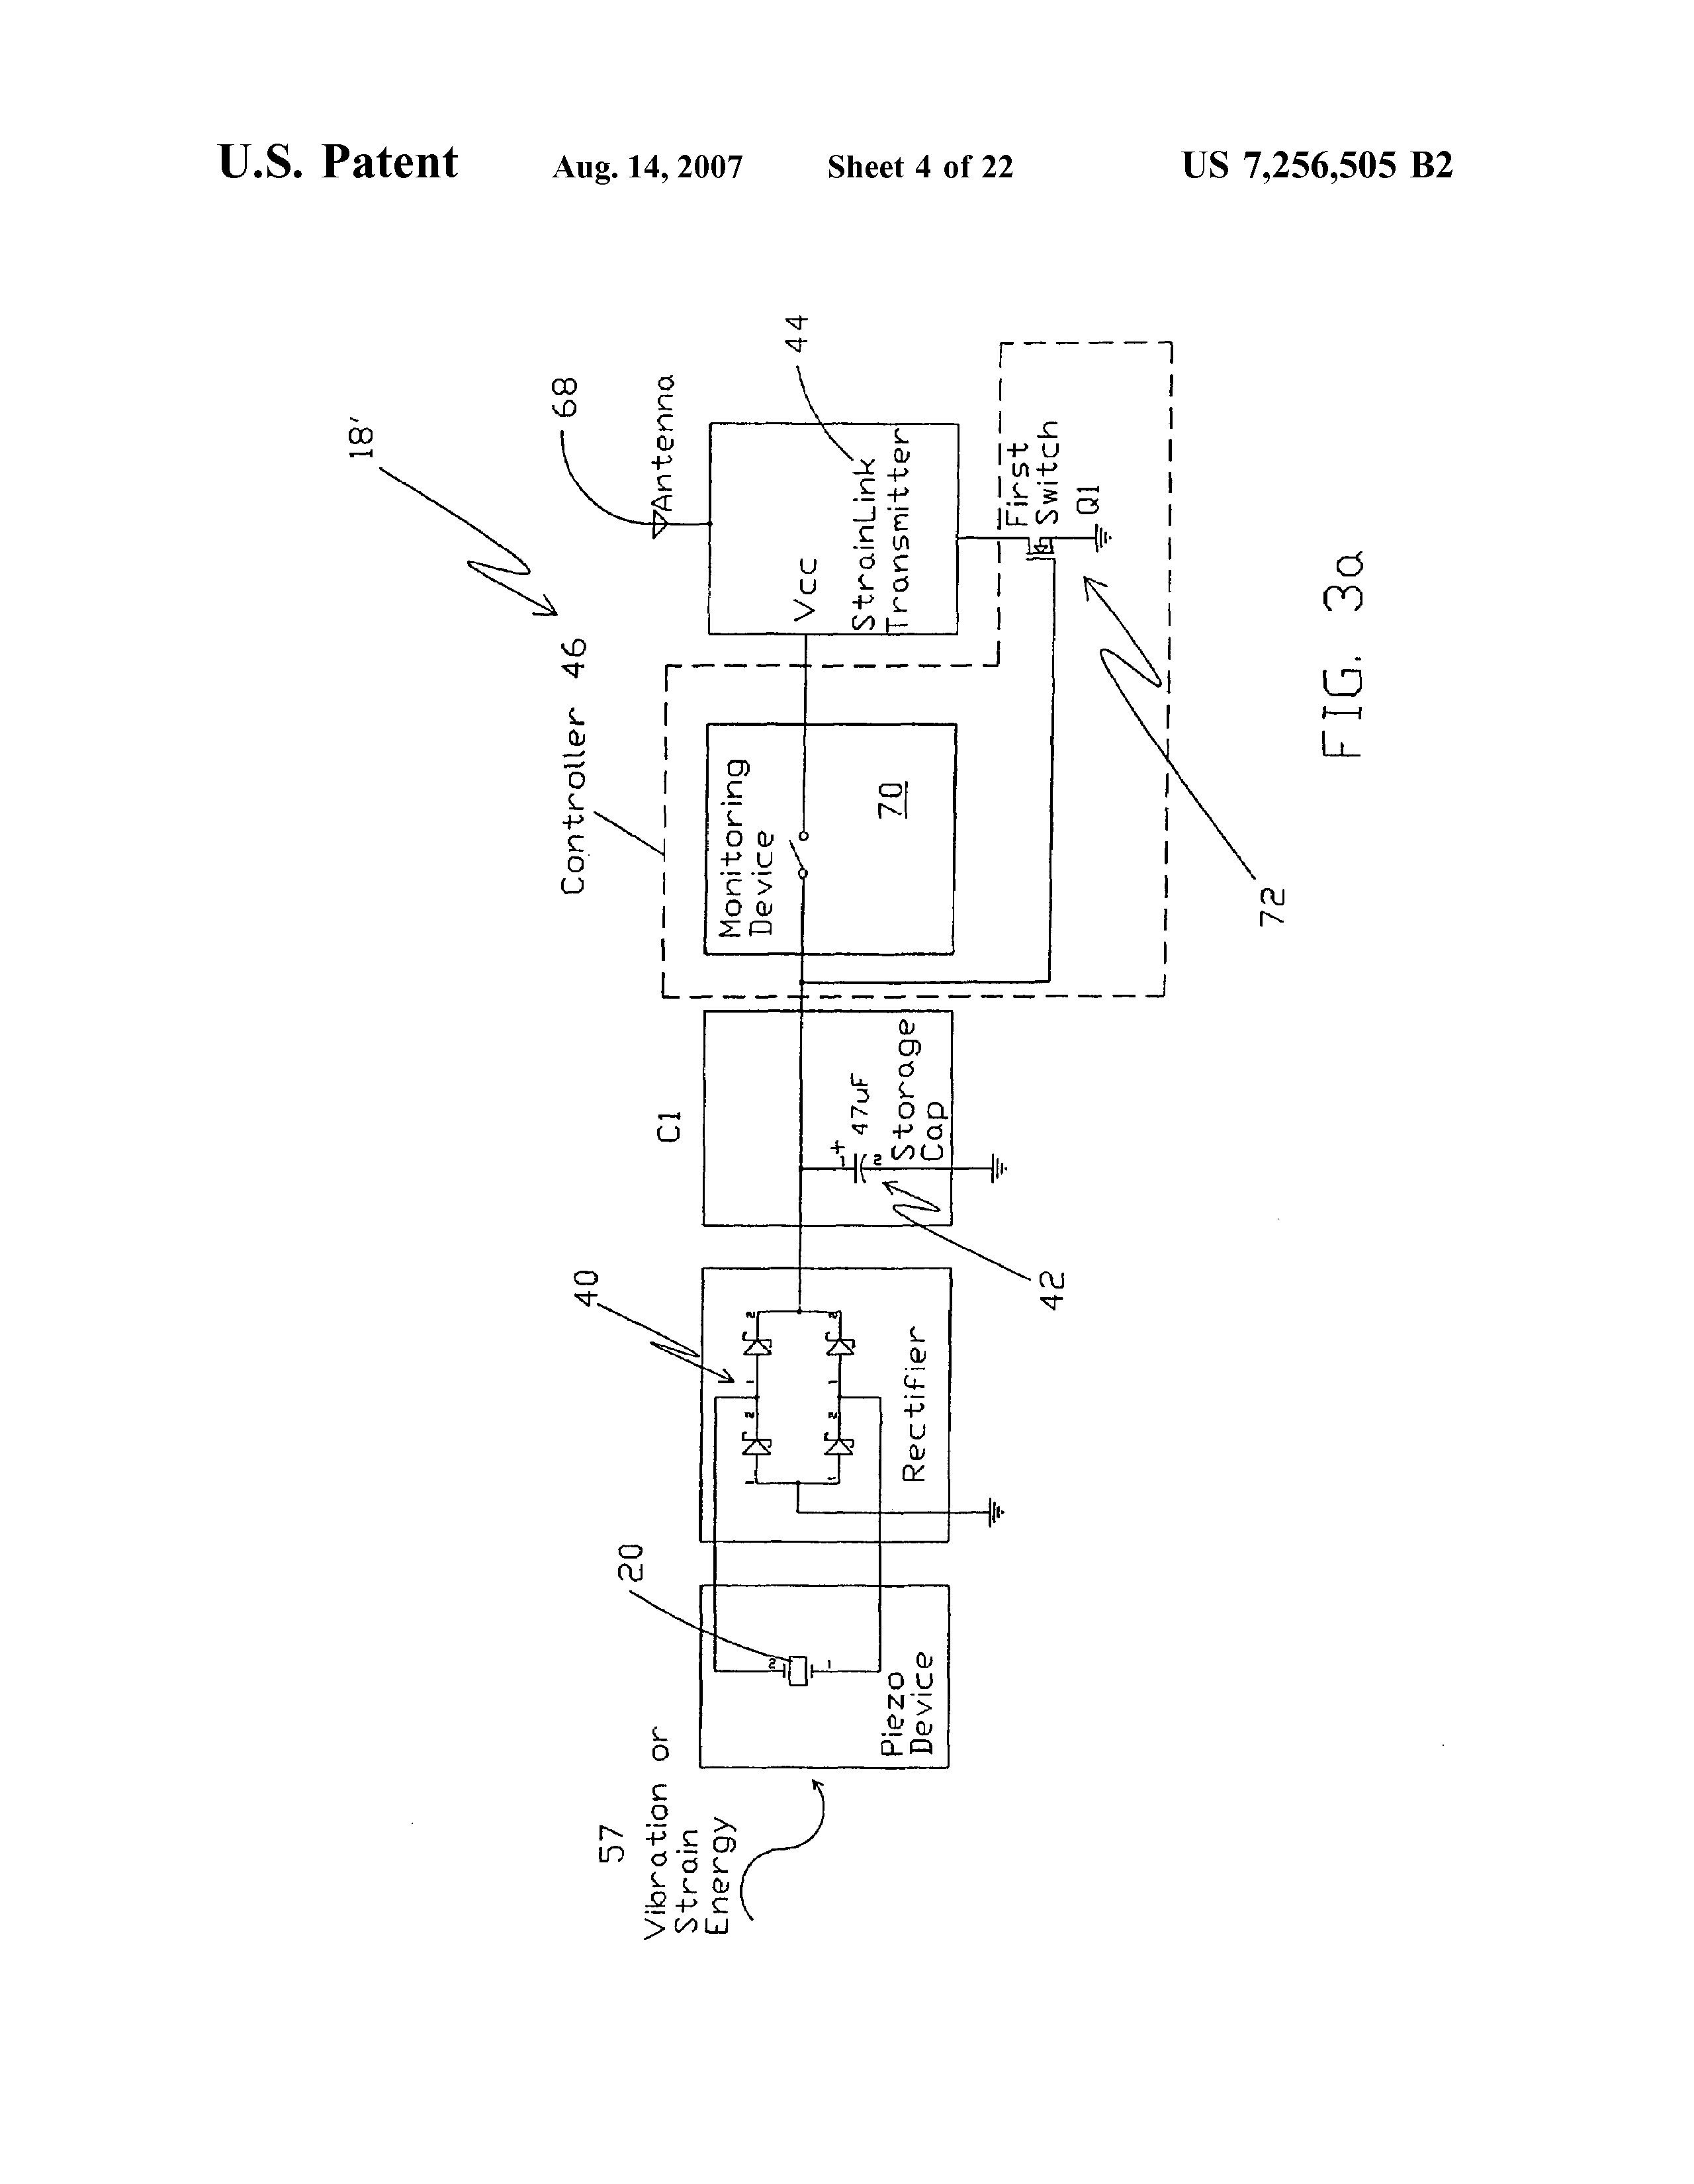 1956 Buick Chassis Suspension Service Repair together with A Guide To Filing A Design Patent Via Uspto also P 0900c152800a833e besides P 0900c1528006824b besides 7256505. on cross sectional view of a tire